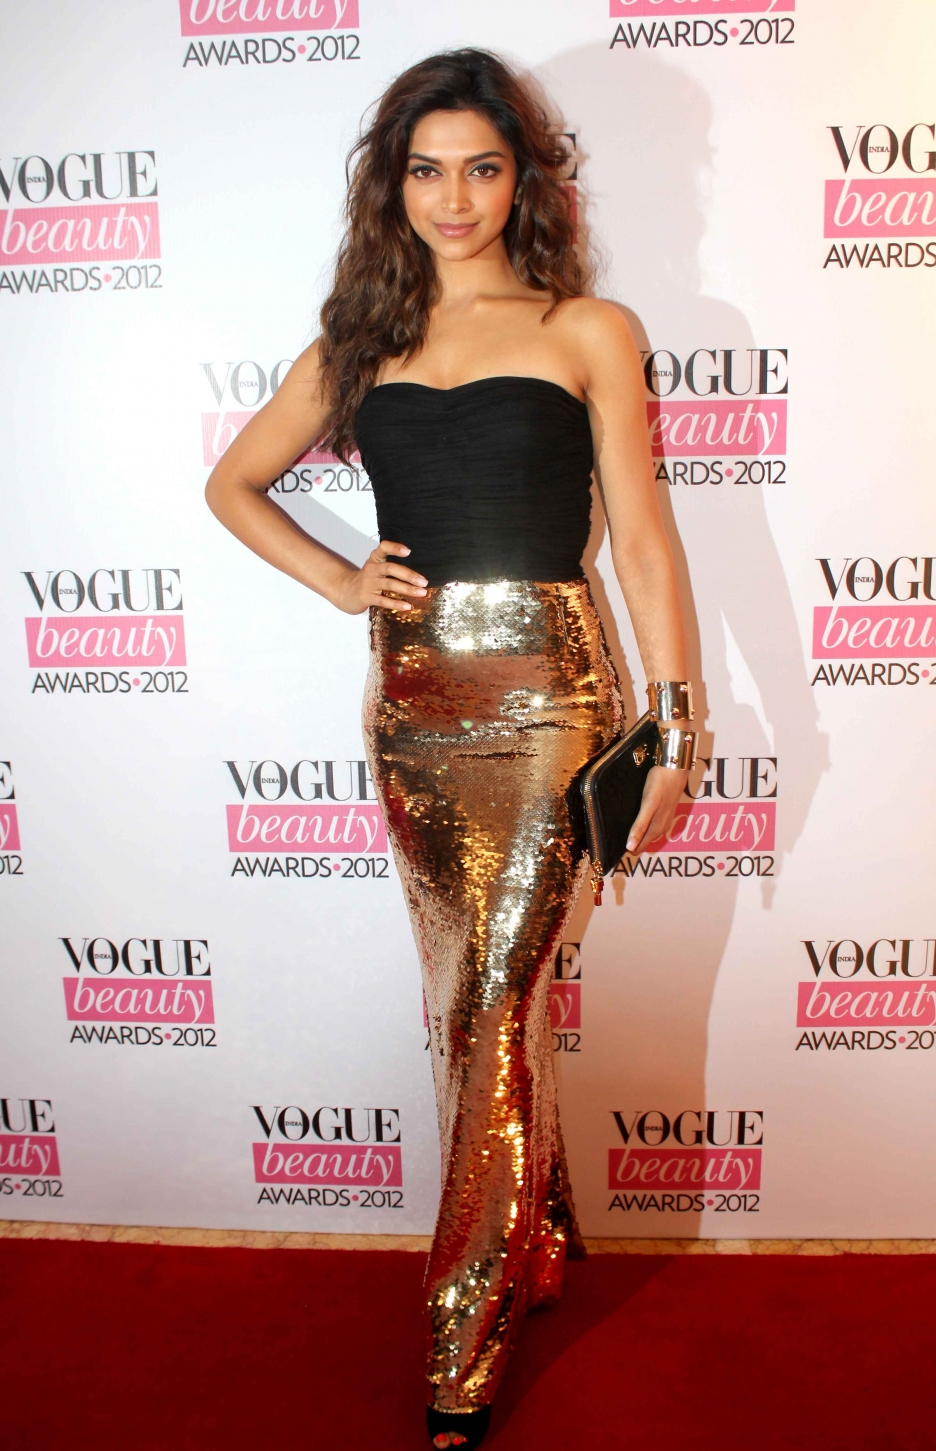 Deepika padukone photo 150 of 647 pics wallpaper photo 648594 photo of deepika padukone 648594 upload date 2013 11 26 number of votes 4 there are 262 more pics in the deepika padukone photo gallery voltagebd Images